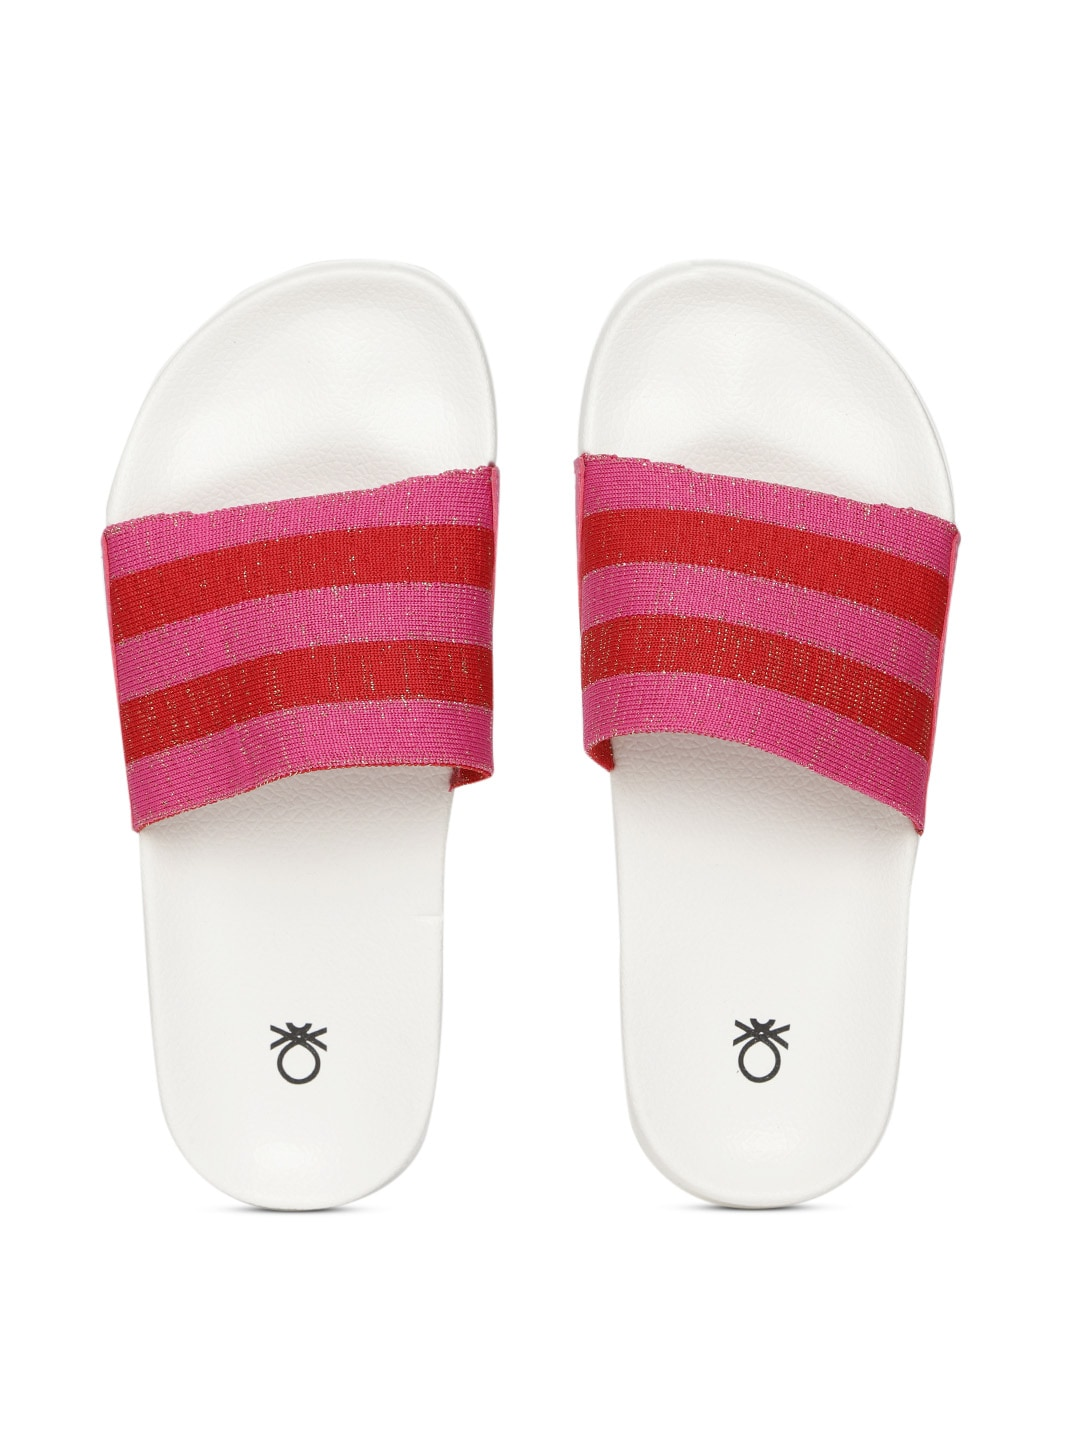 8185968c39af Slide Flip Flops - Buy Slide Flip Flops online in India